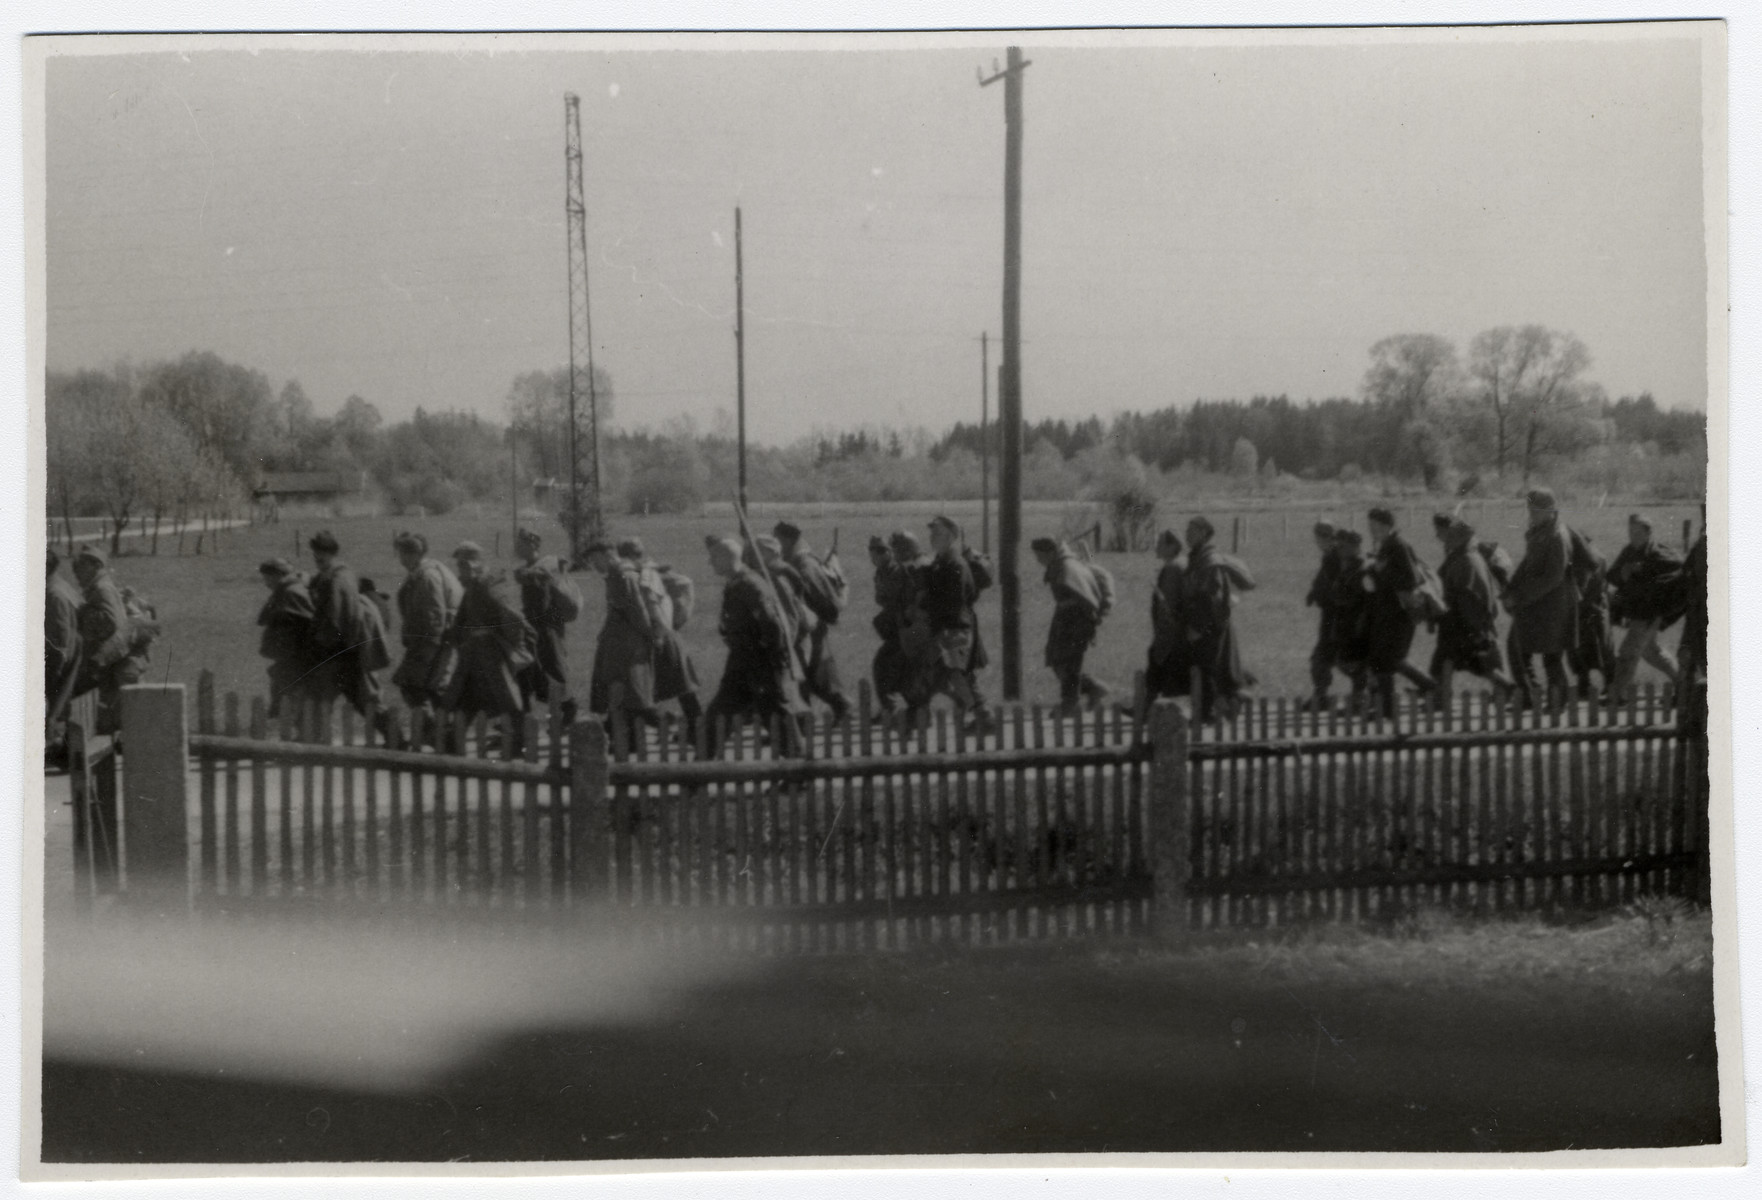 Clandestine photograph taken by Maria Seidenberger from the window of her family's home of German SS men and soldiers marching away from the Dachau concentration camp, the day before it was liberated.  The photo was taken from the second story window of her family's home.